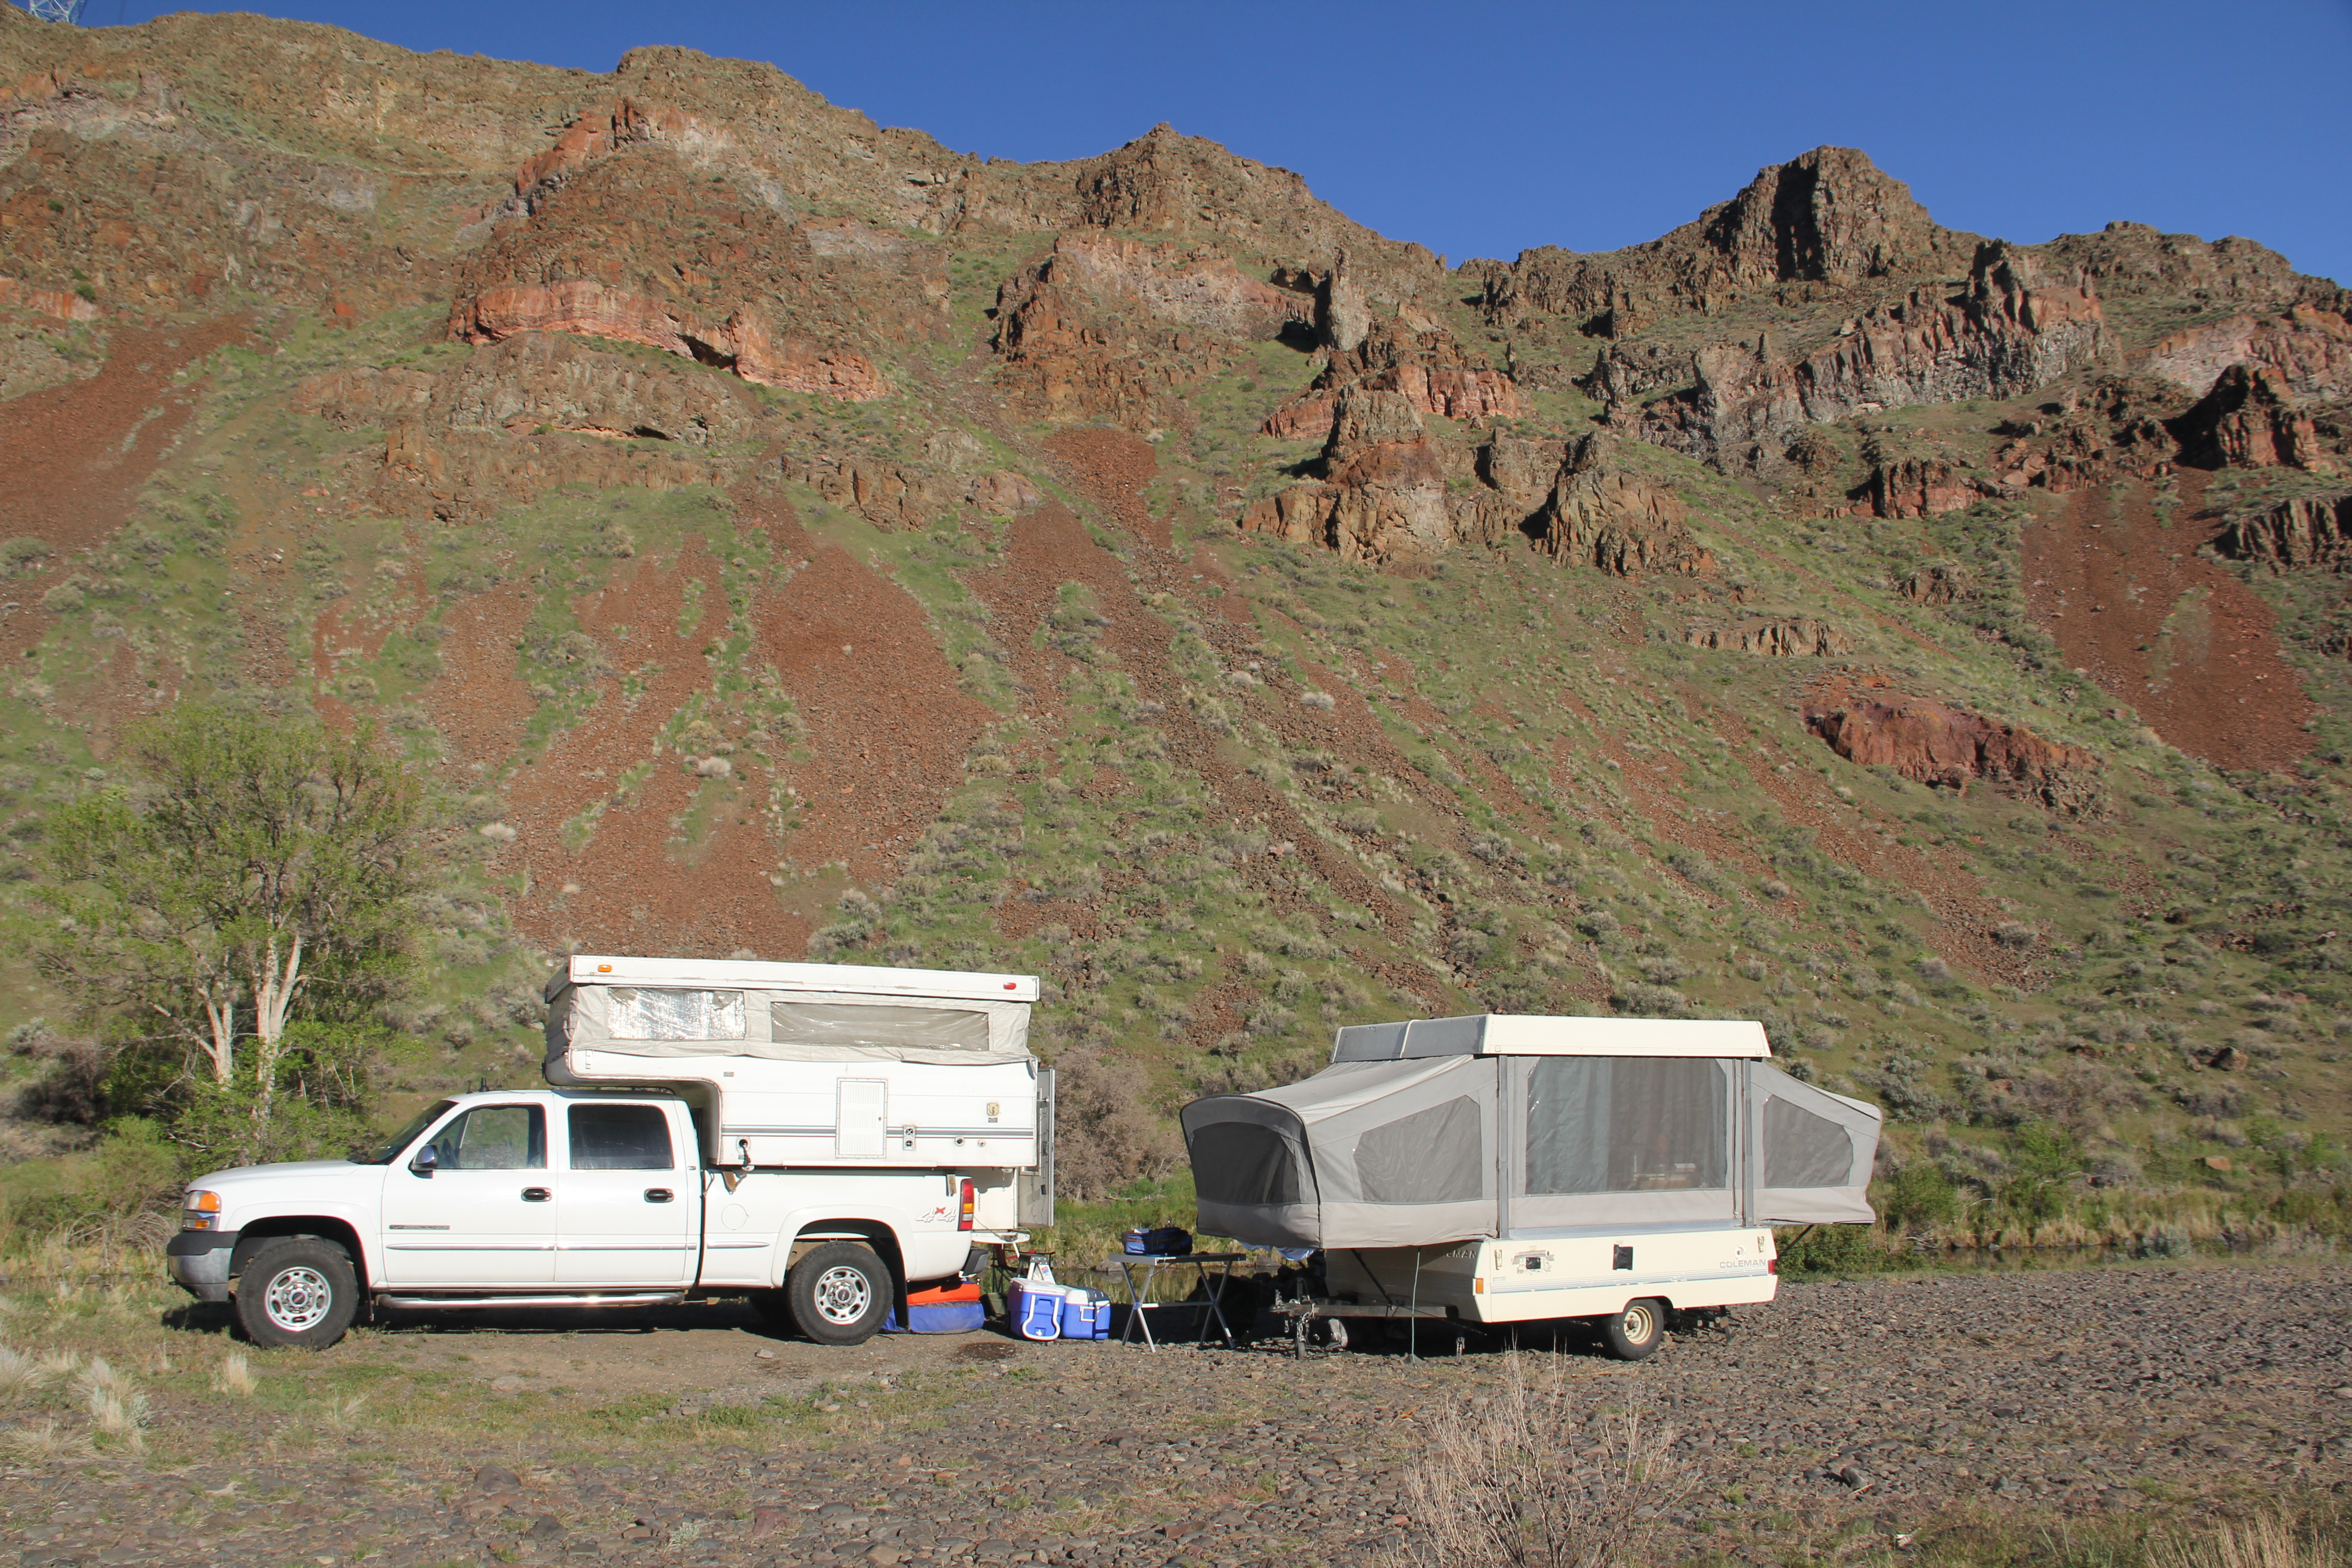 Lunker Vision camp on the Owyhee